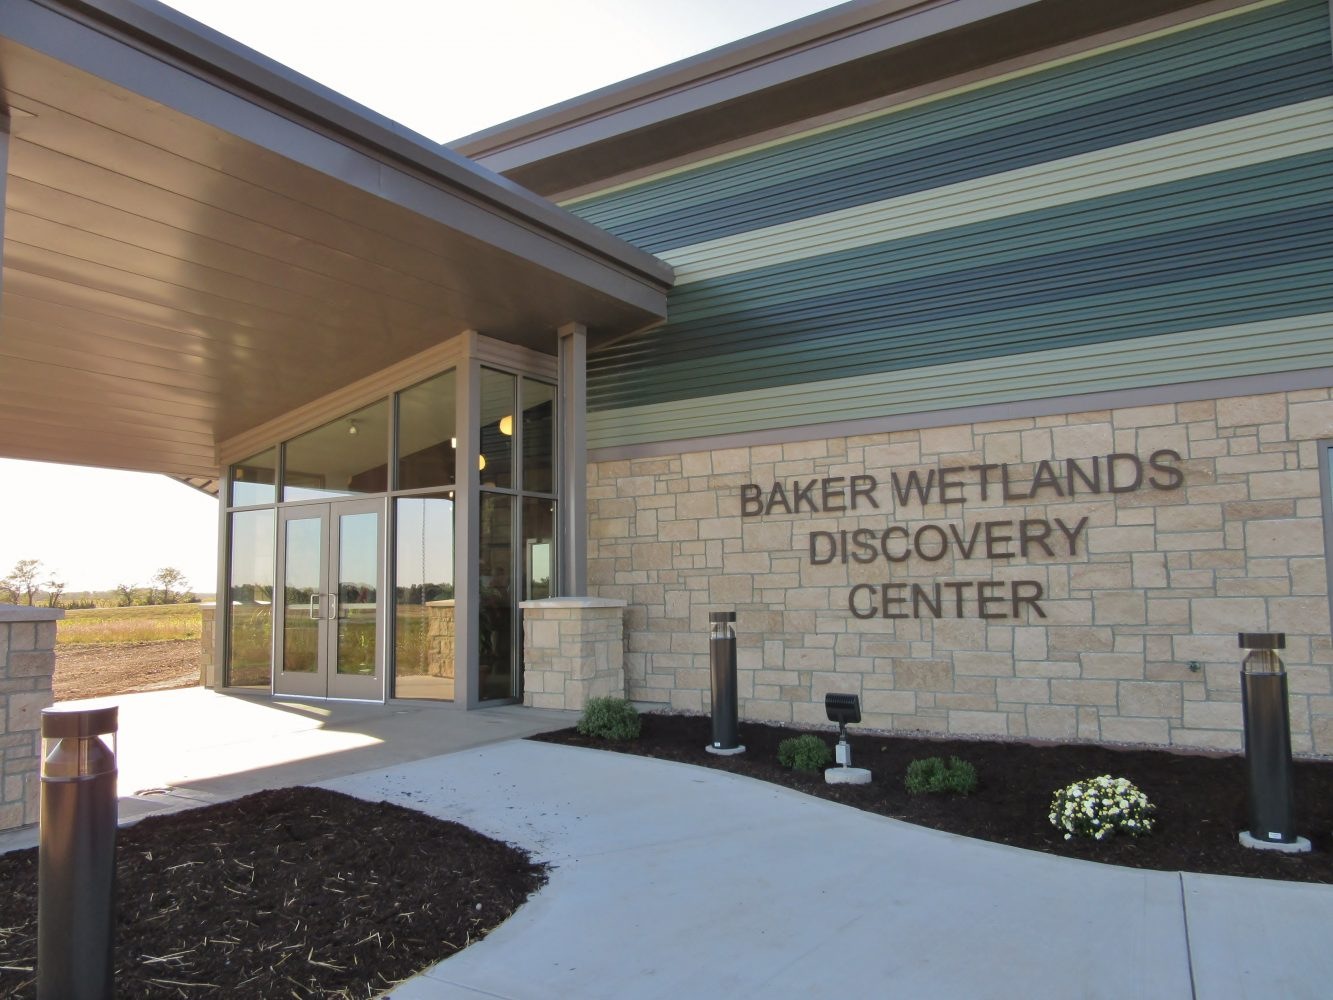 Discovery Center opens in Baker Wetlands